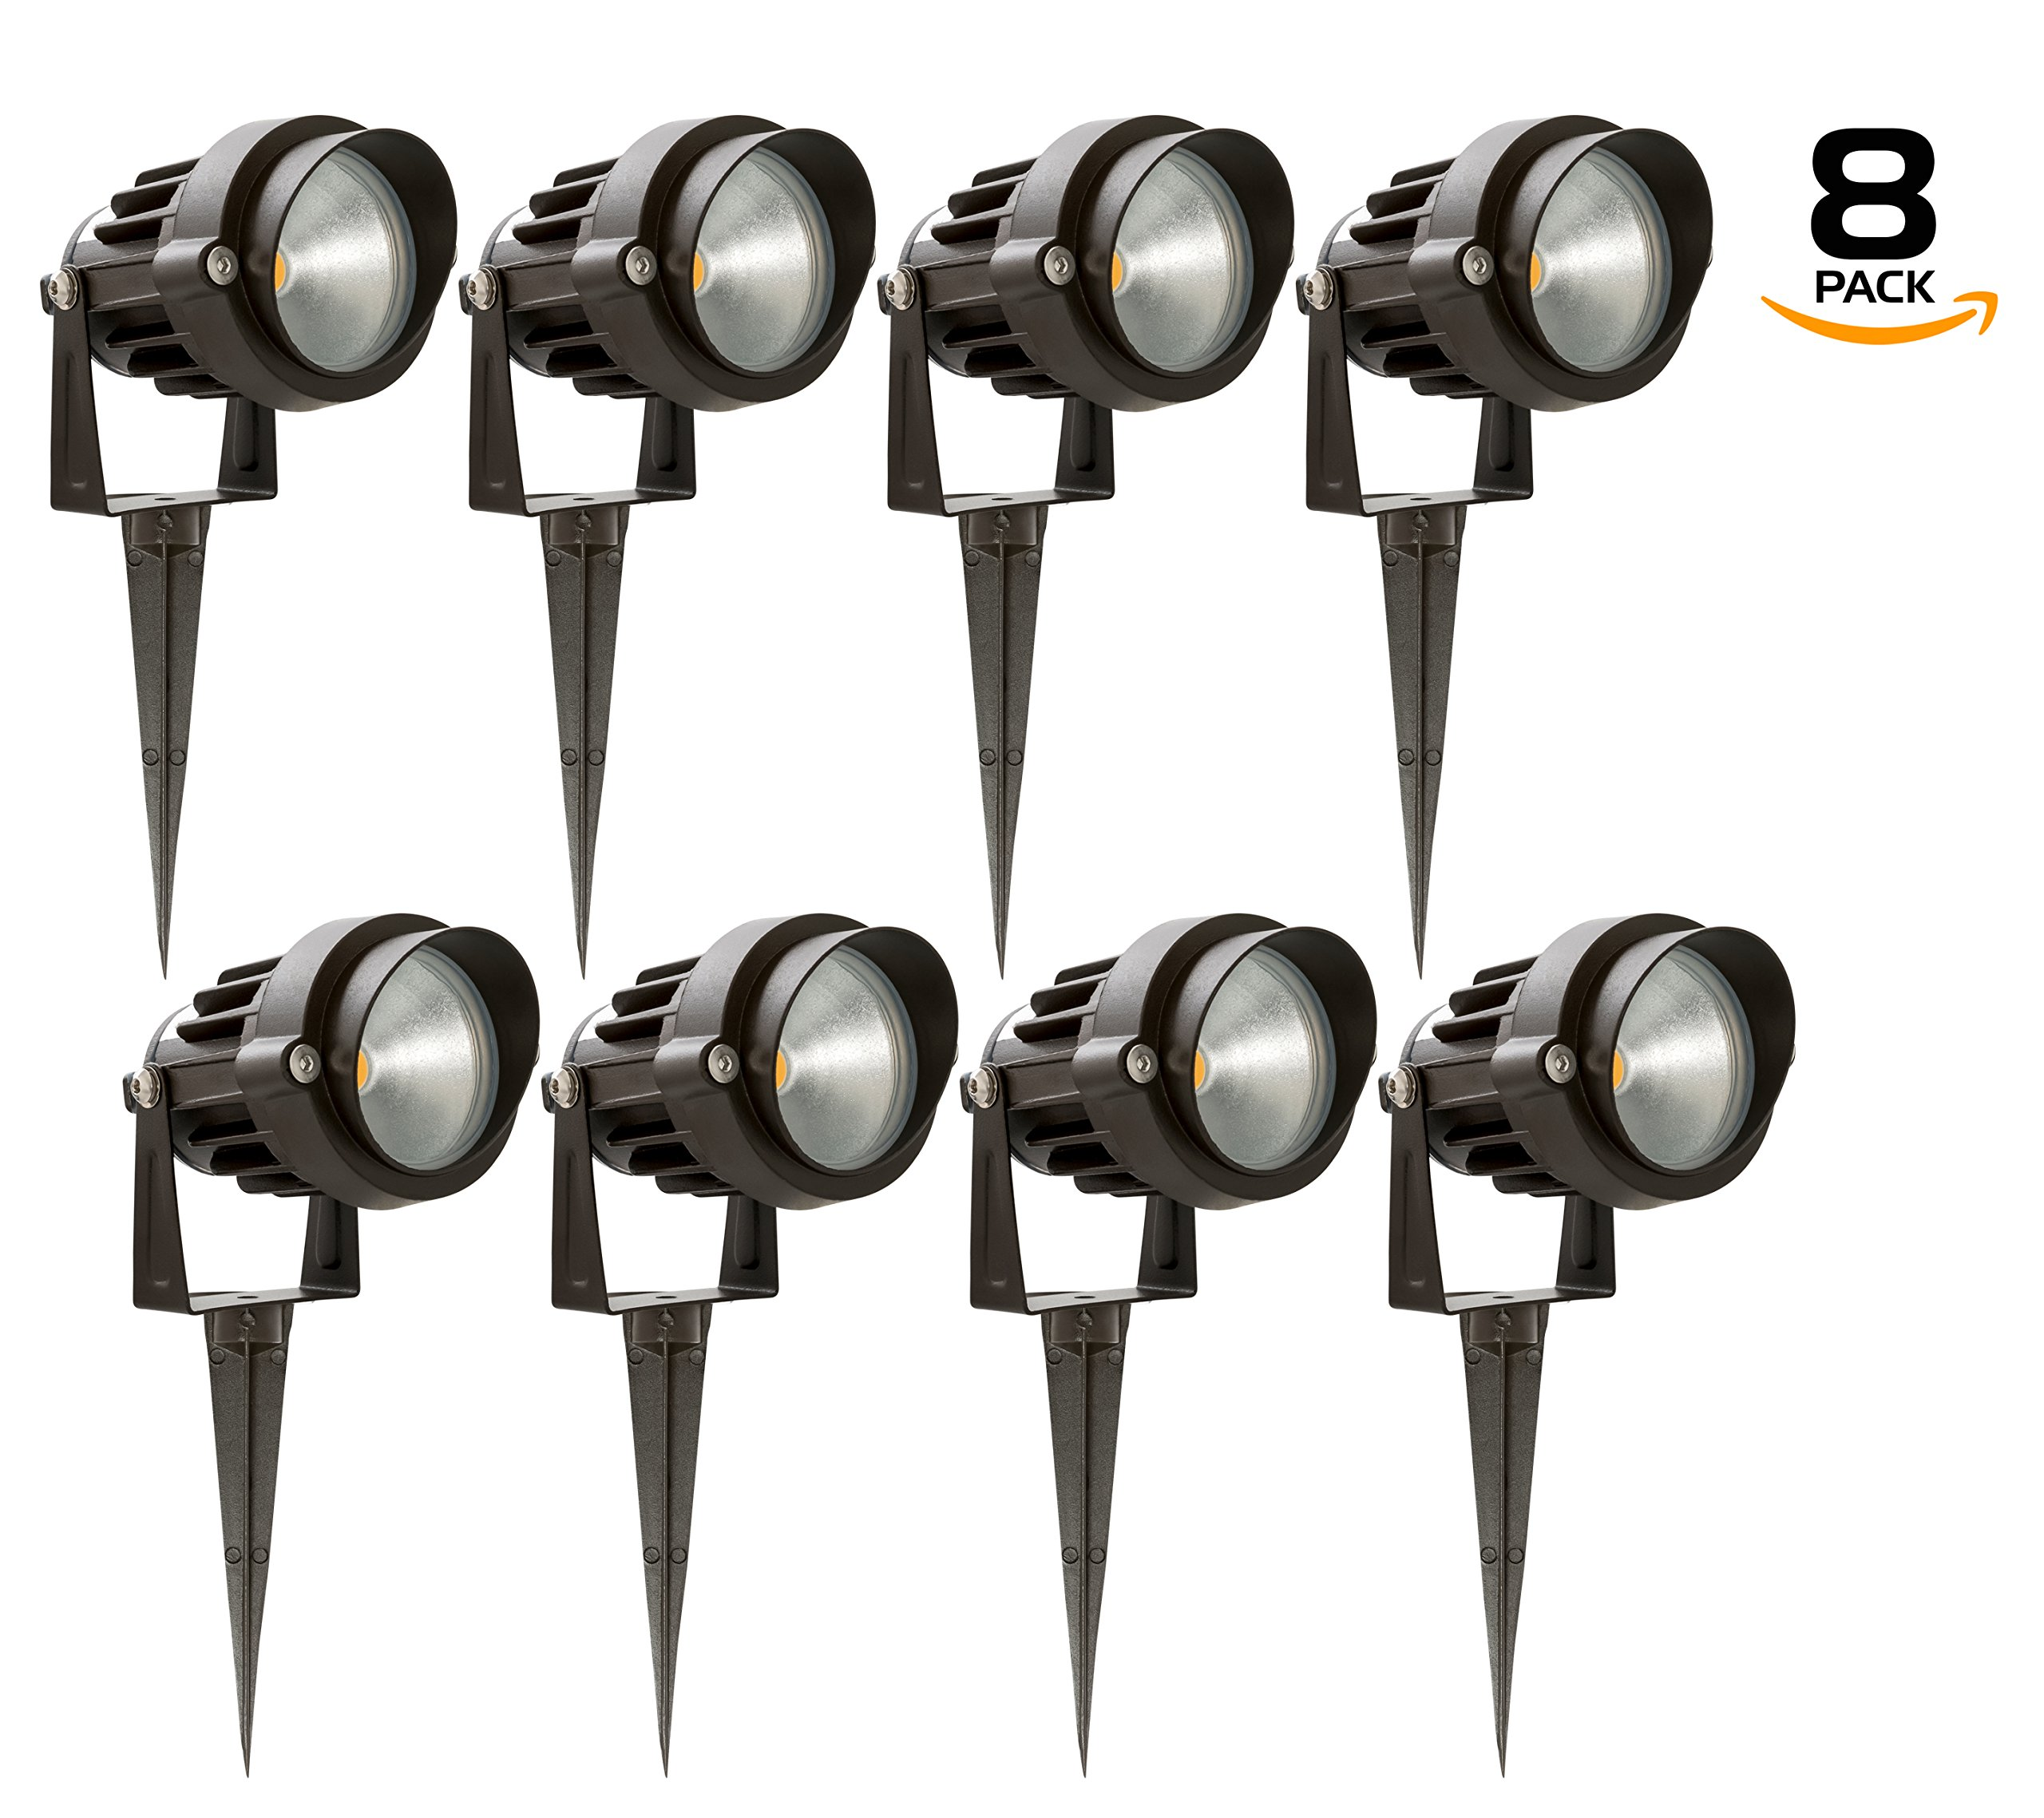 Westgate 5W LED Landscape Light, W/ COB Technology & Smooth Aluminum Reflector 12V AC/DC Suitable for Wet Locations, 5 Year Warranty (8 Pack, 3200K Warm White) by MFG Westgate